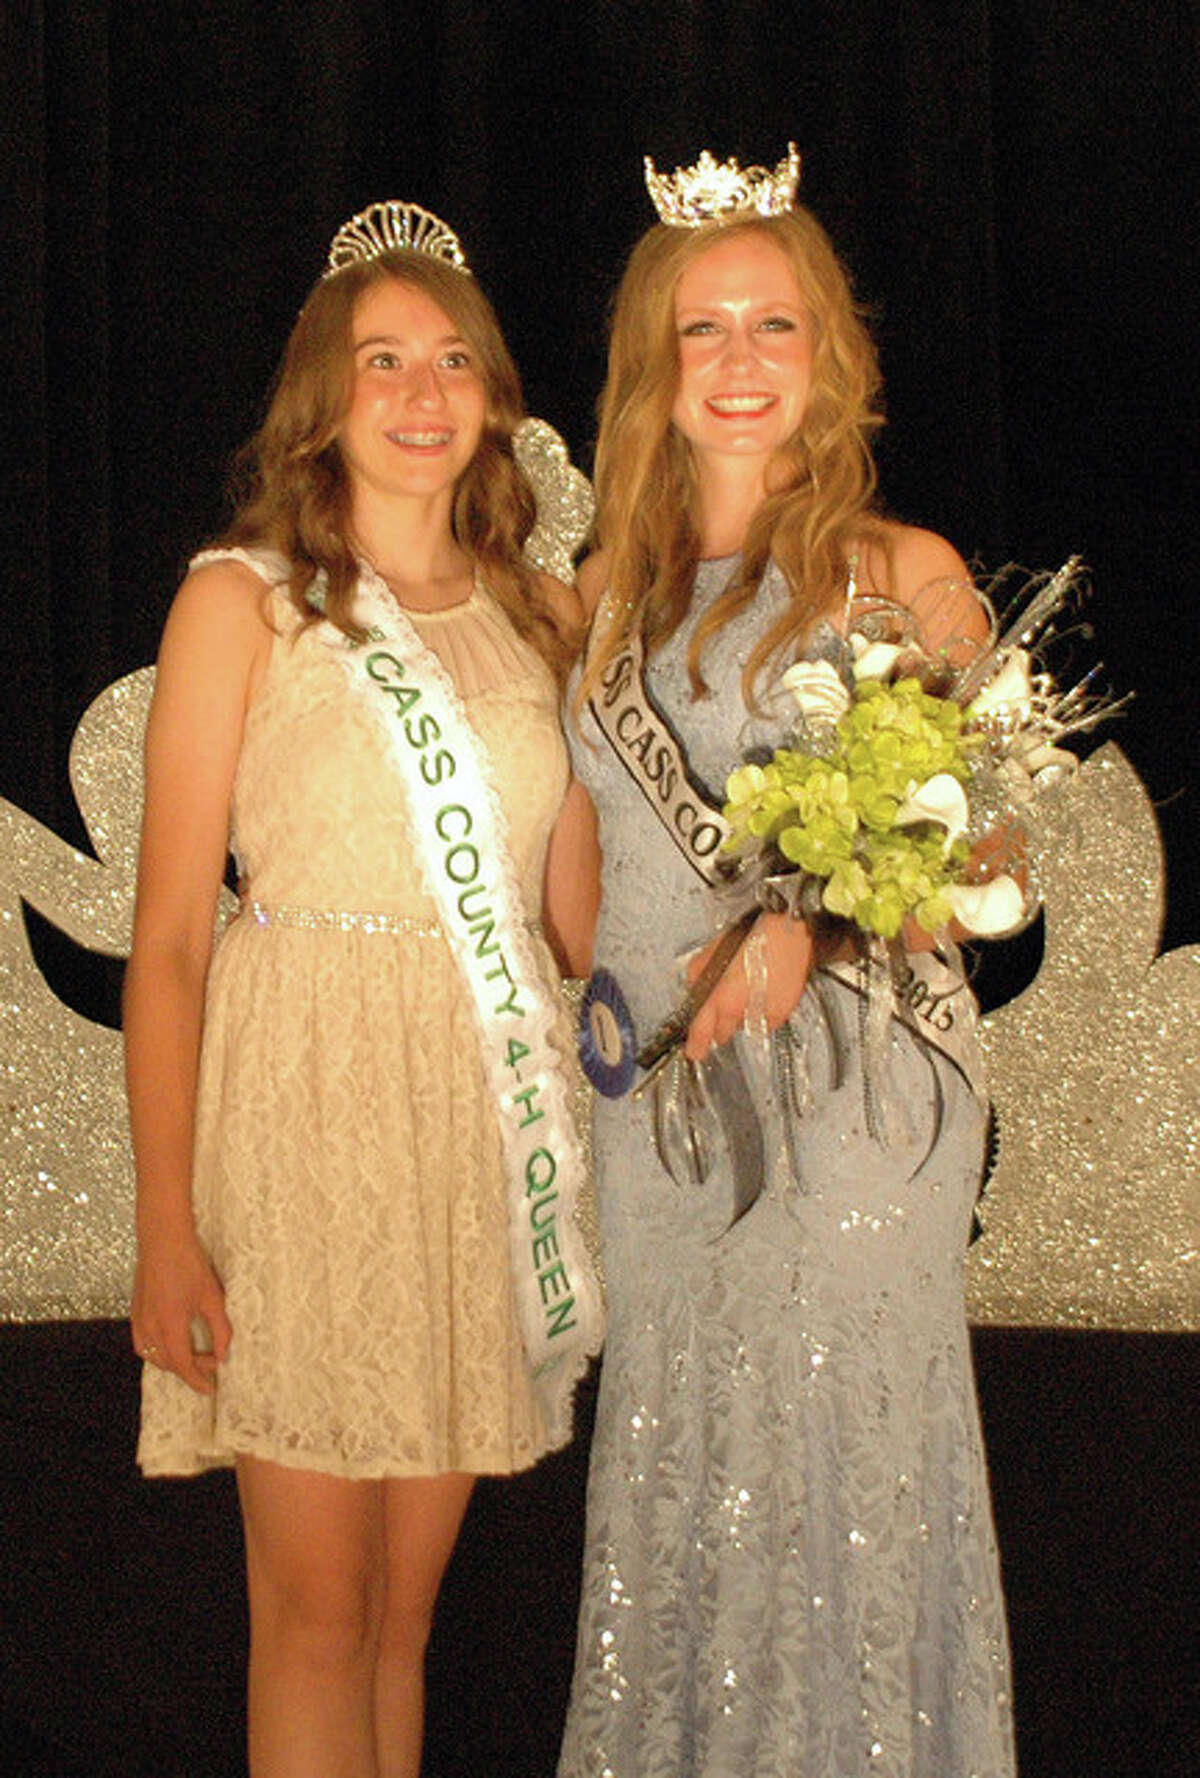 Beth Warden of Beardstown, the 2015 4-H Queen, and 2015 Miss Cass County Queen Aileana Rawlins of Beardstown show their winning smiles after being crowned during the Cass County Fair Queen Pageant on Monday. The fair continues through Saturday in Virginia.